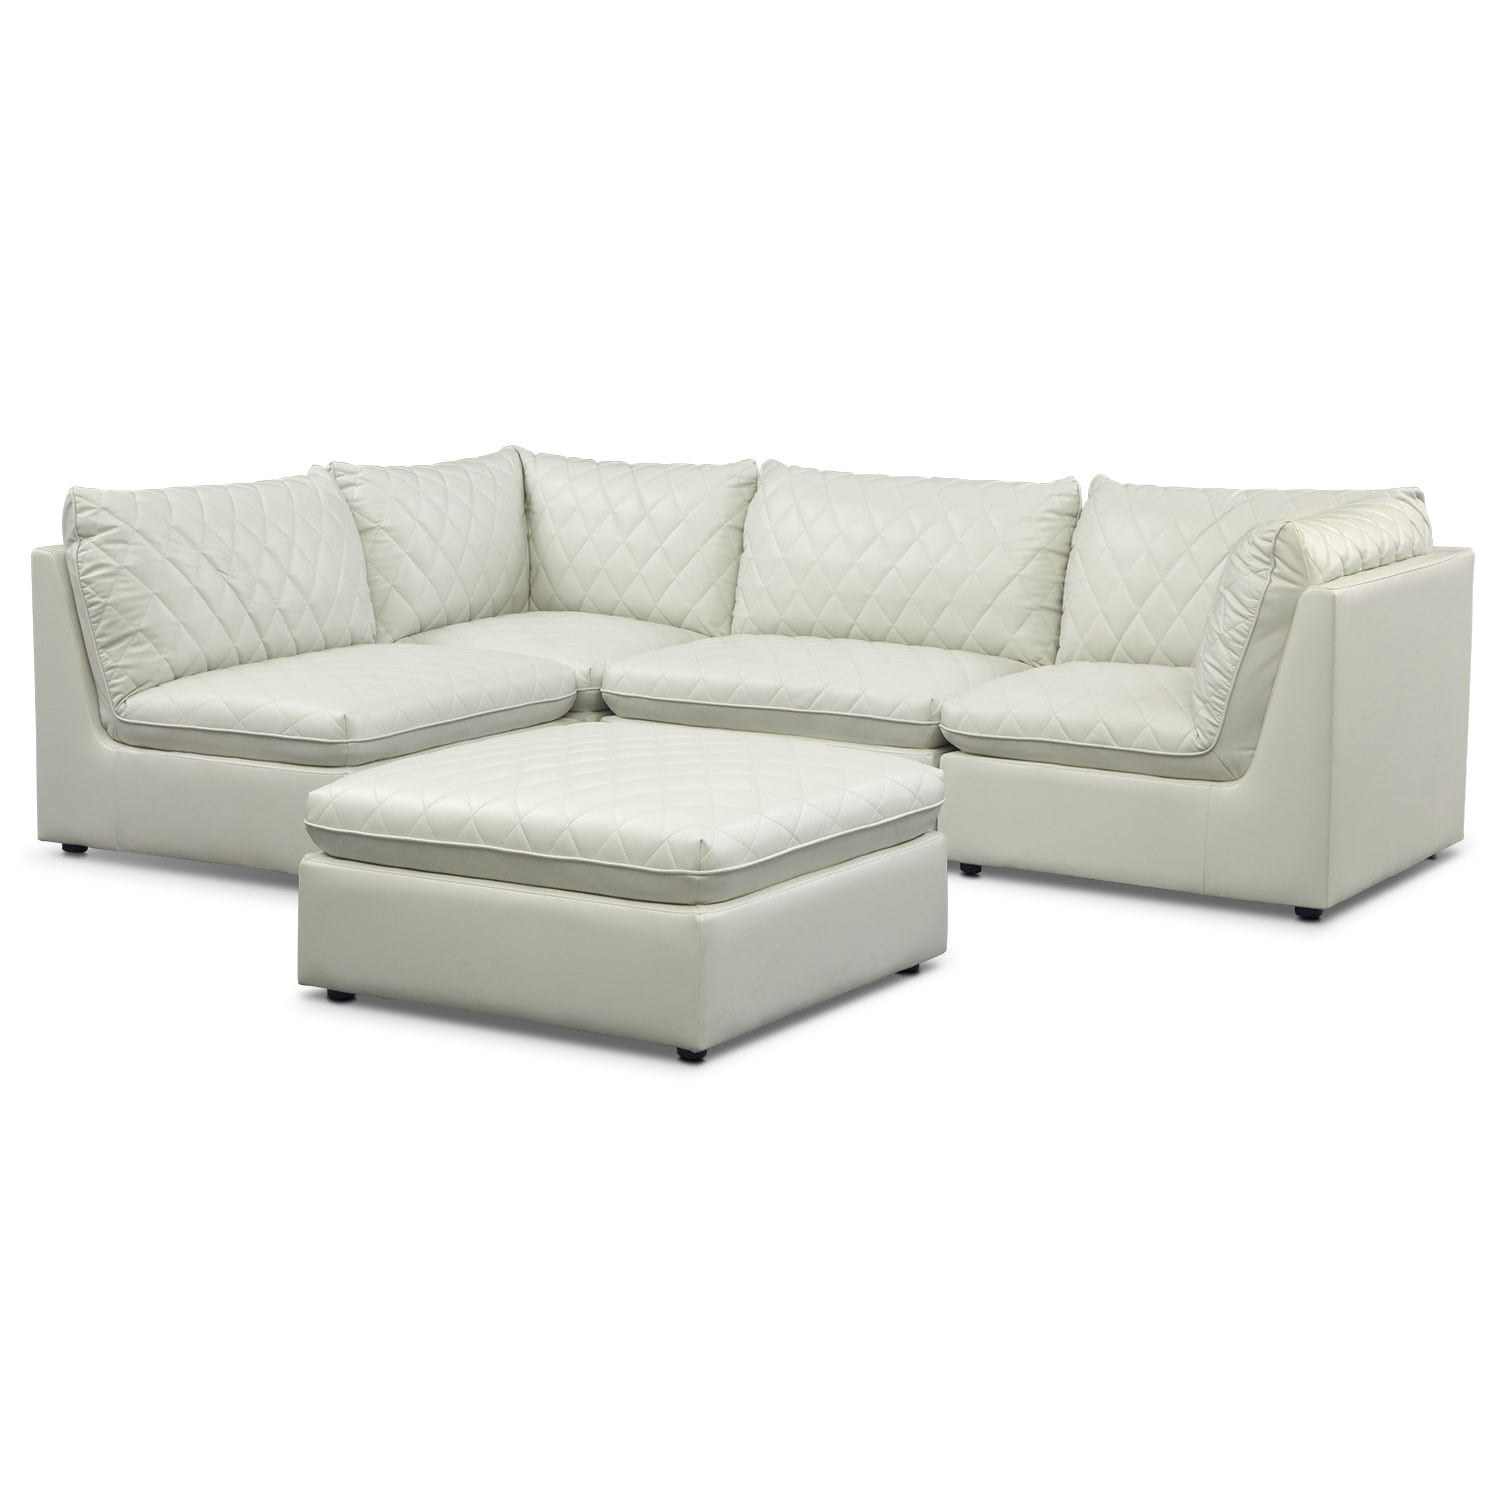 Living Room Furniture - Coco Mist  4-Piece Sectional with Cocktail Ottoman